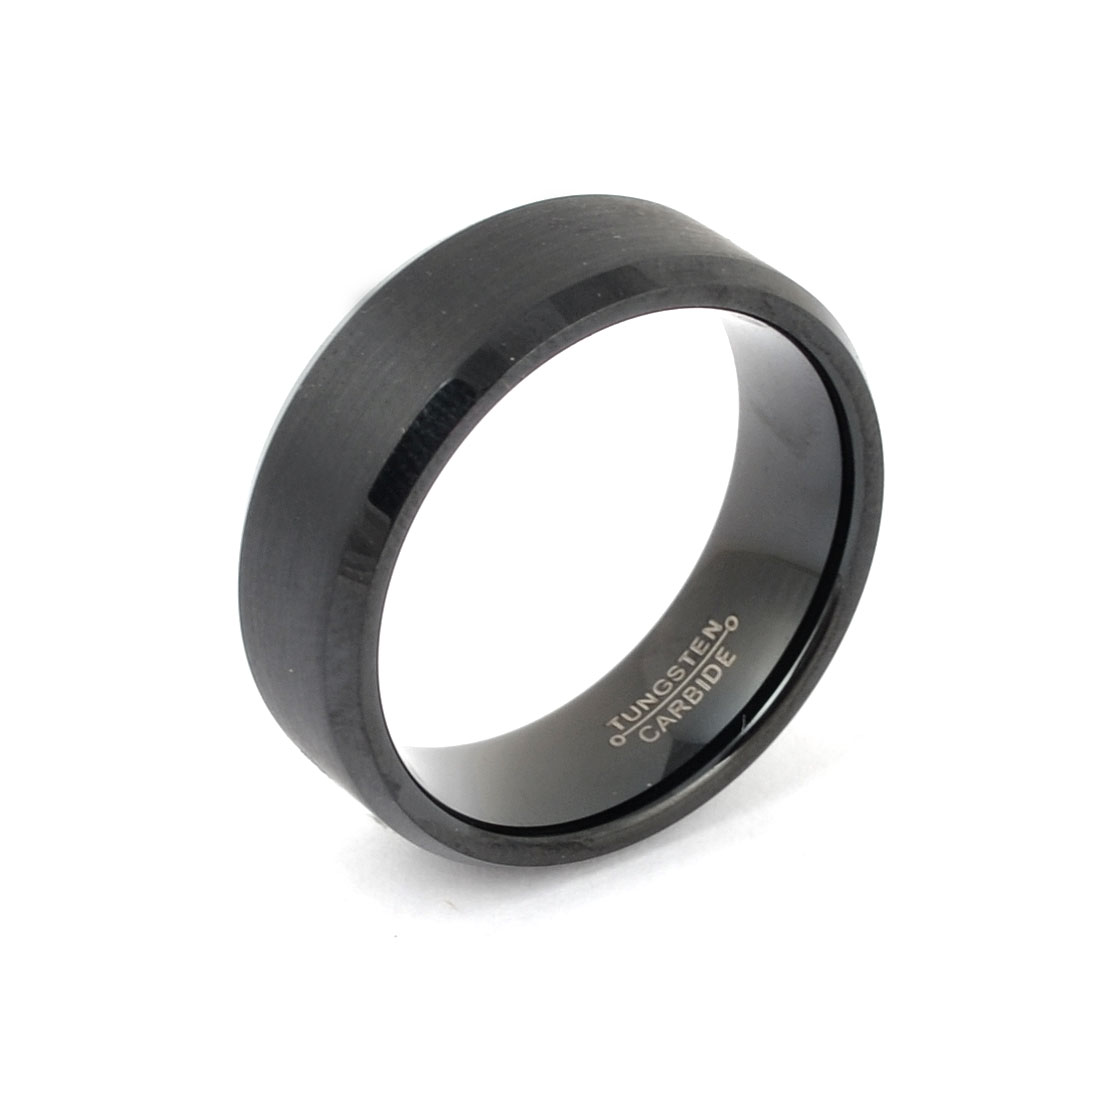 Men 67mm Circumference Tungsten Steel Band Ring Finger Detailing Black Us 11 3/4( 12#)